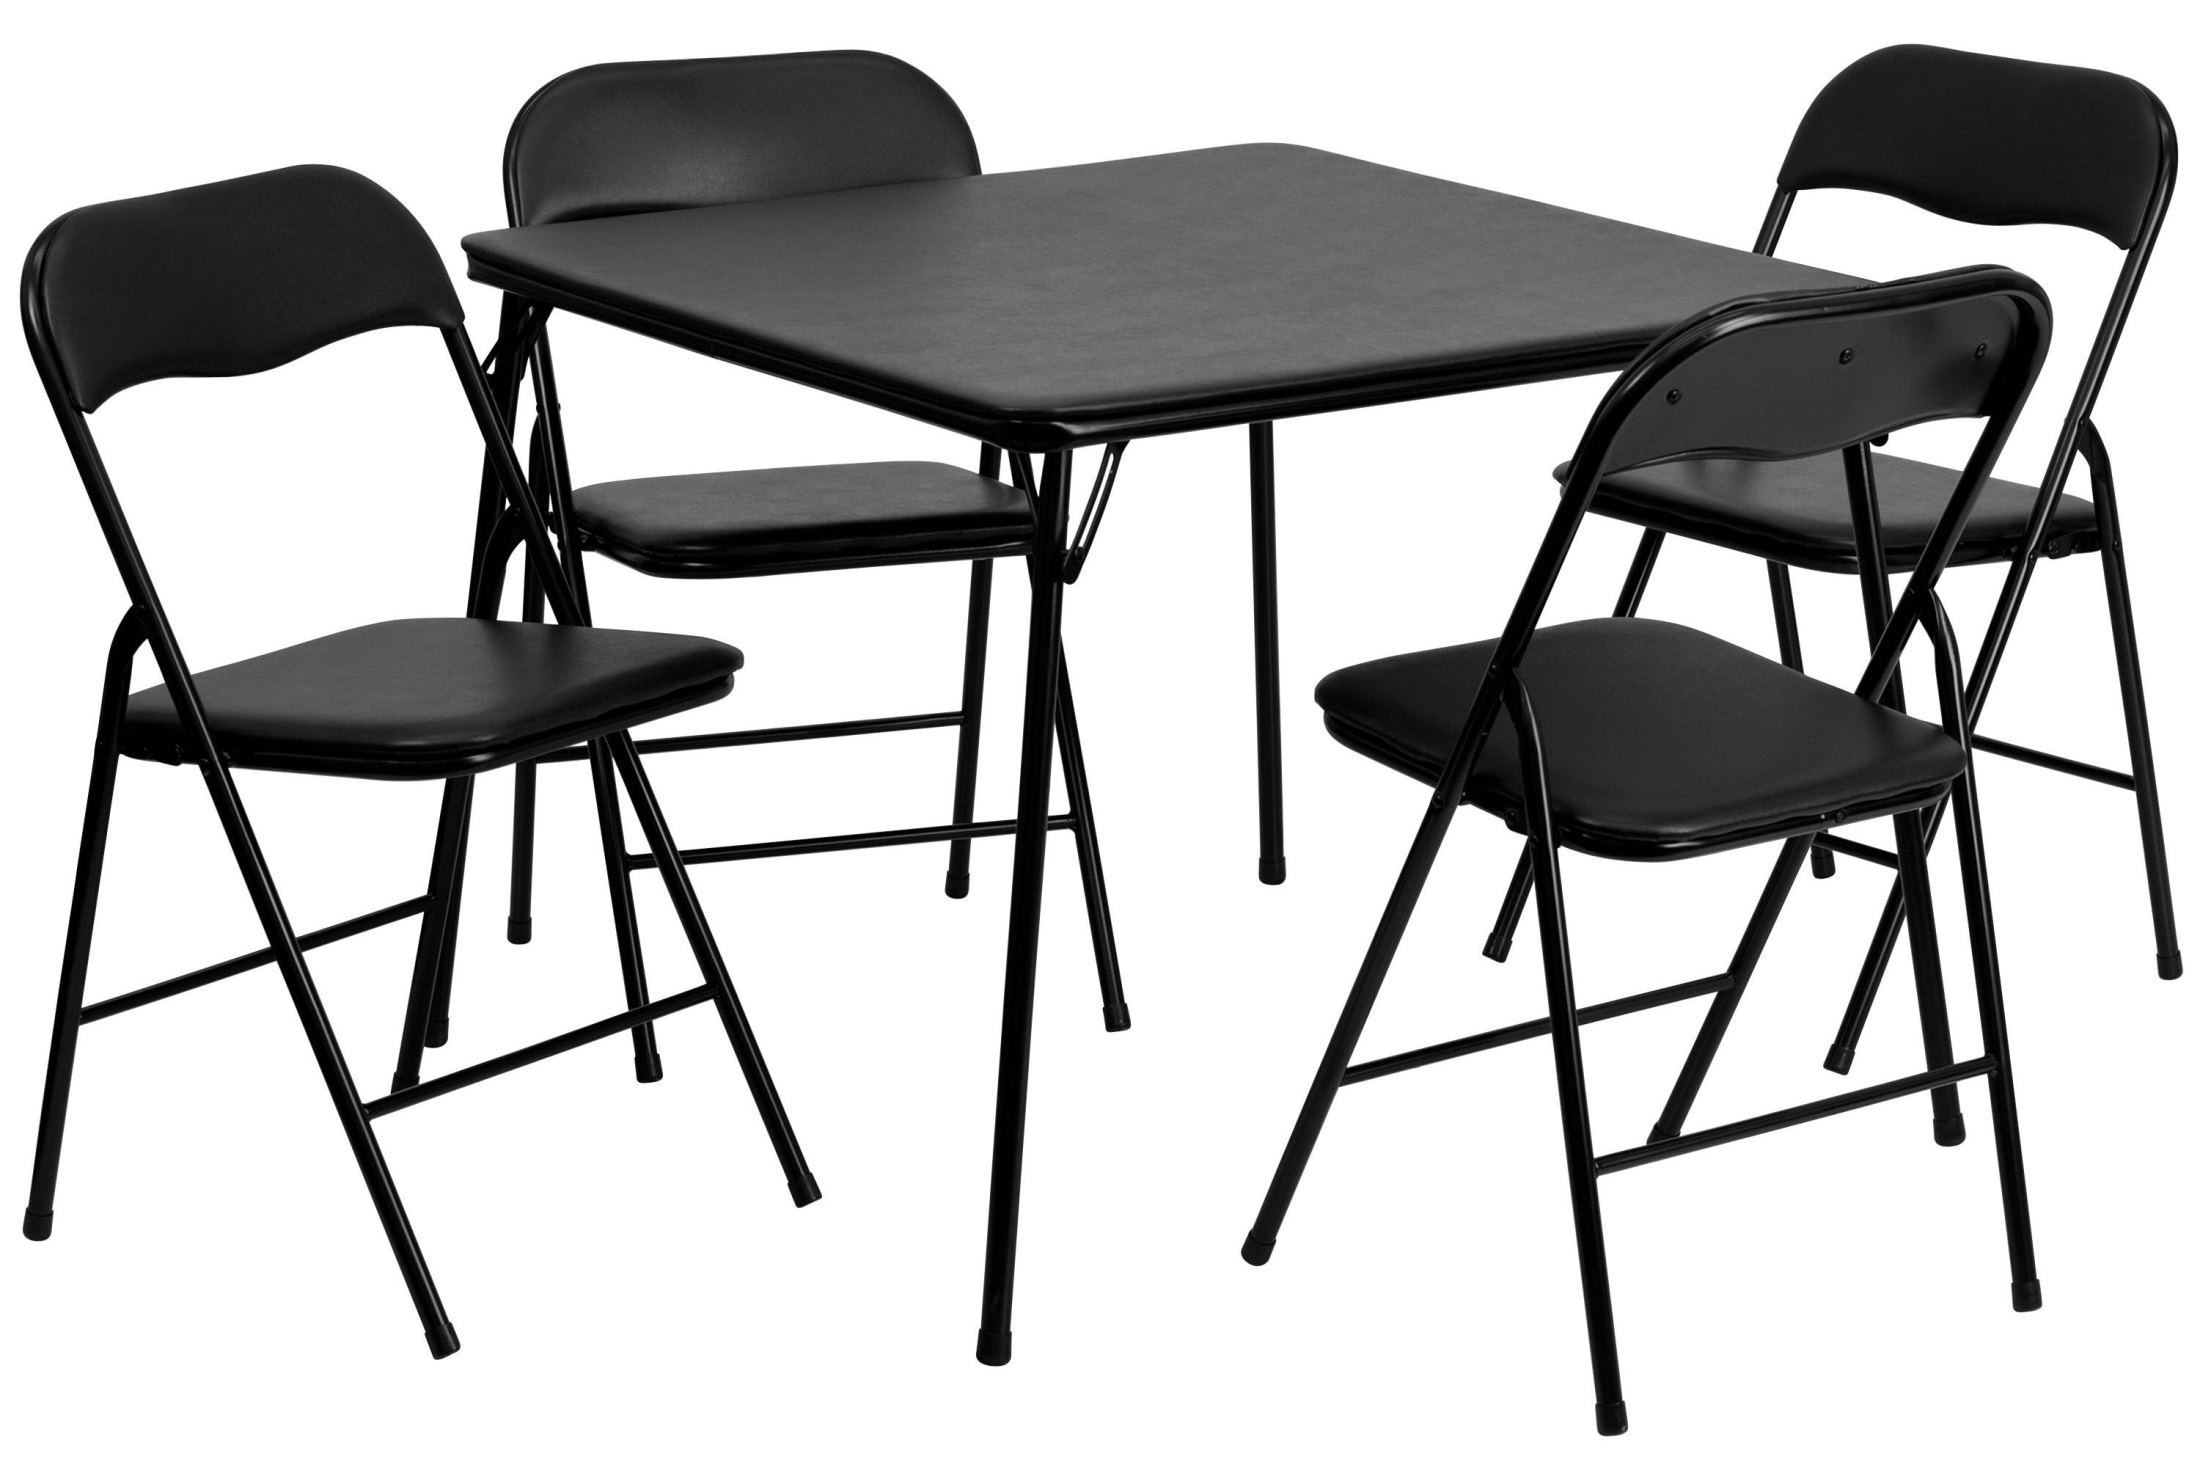 5 Piece Black Folding Card Table And Chair Set From